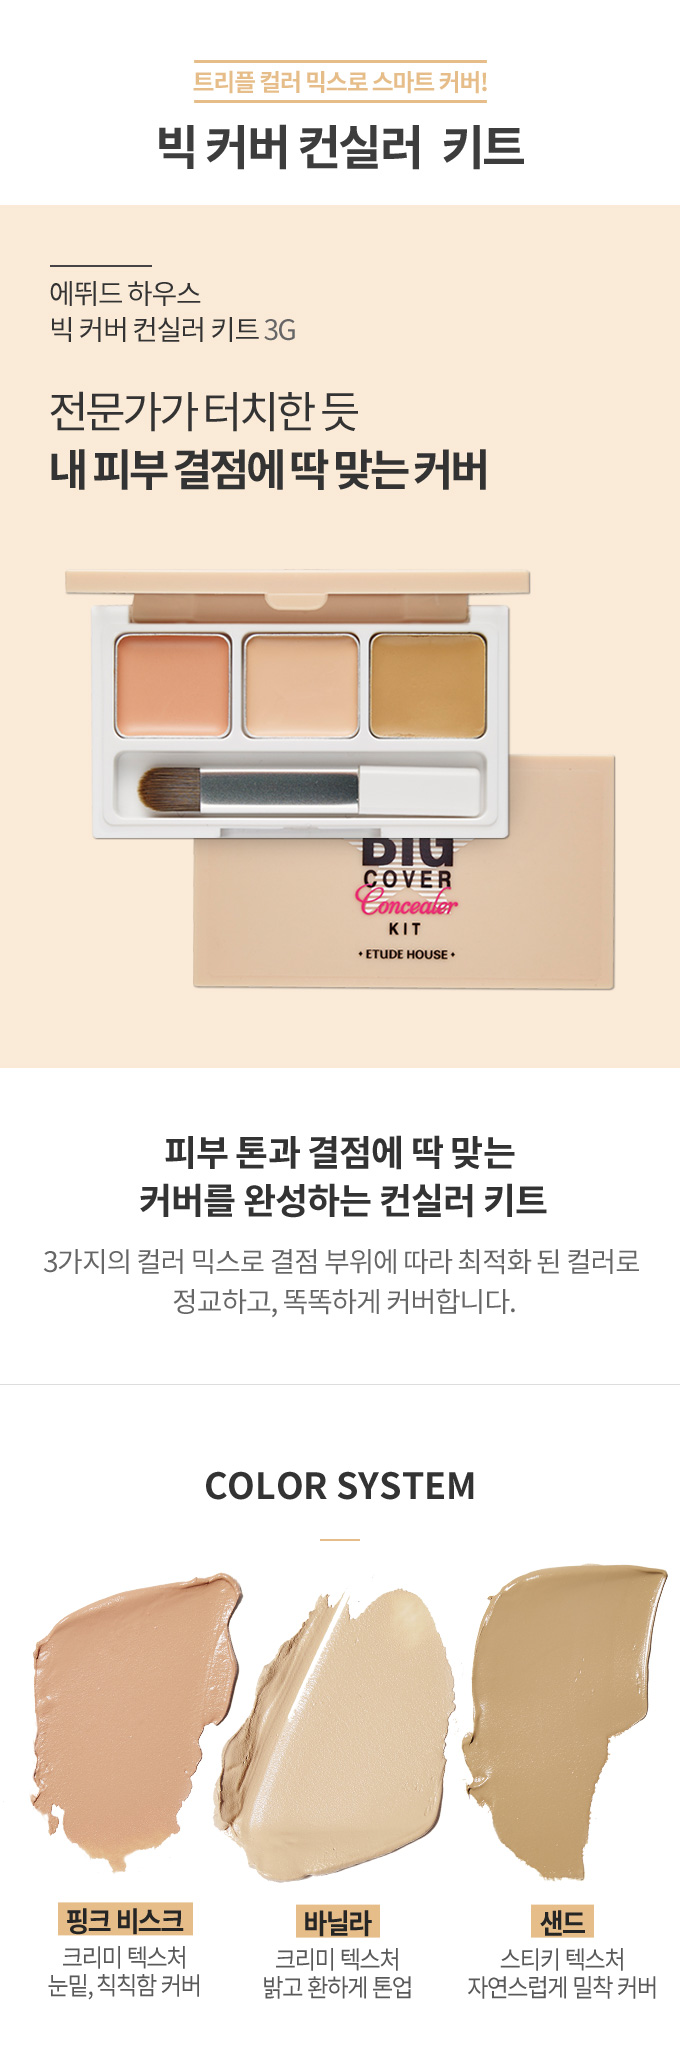 Etude House Big Cover Concealer Kit Lunatu Kissfull Lip Care Volume 3g Related Products Customers Also Viewed Previous Kissful